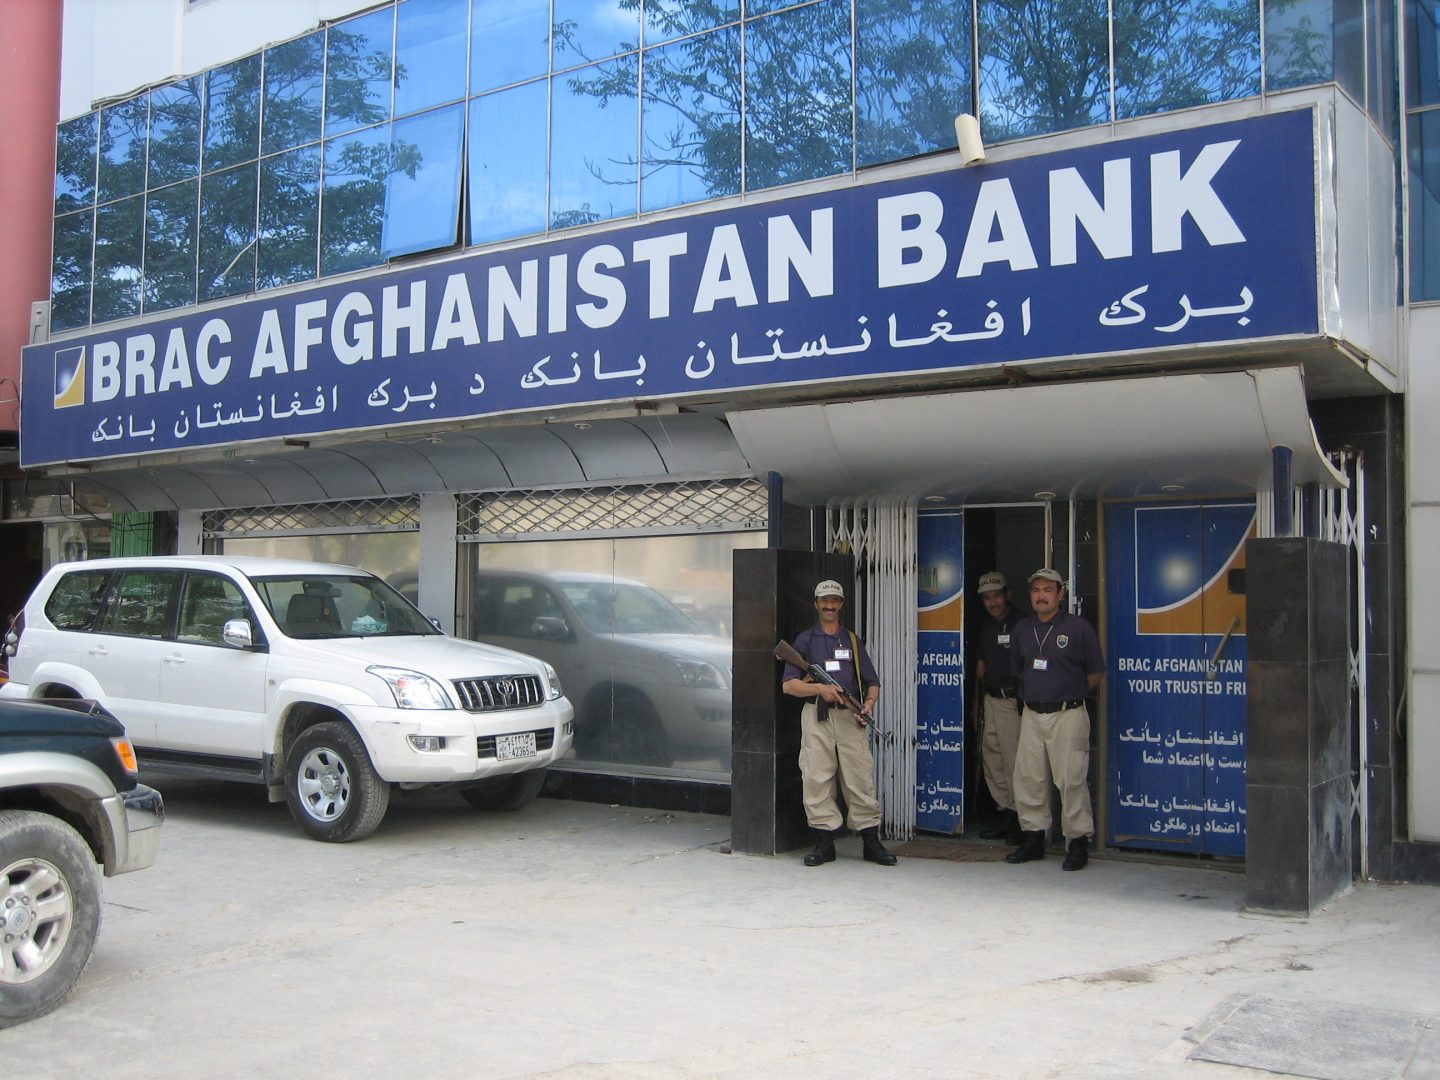 A bank front in Afghanistan